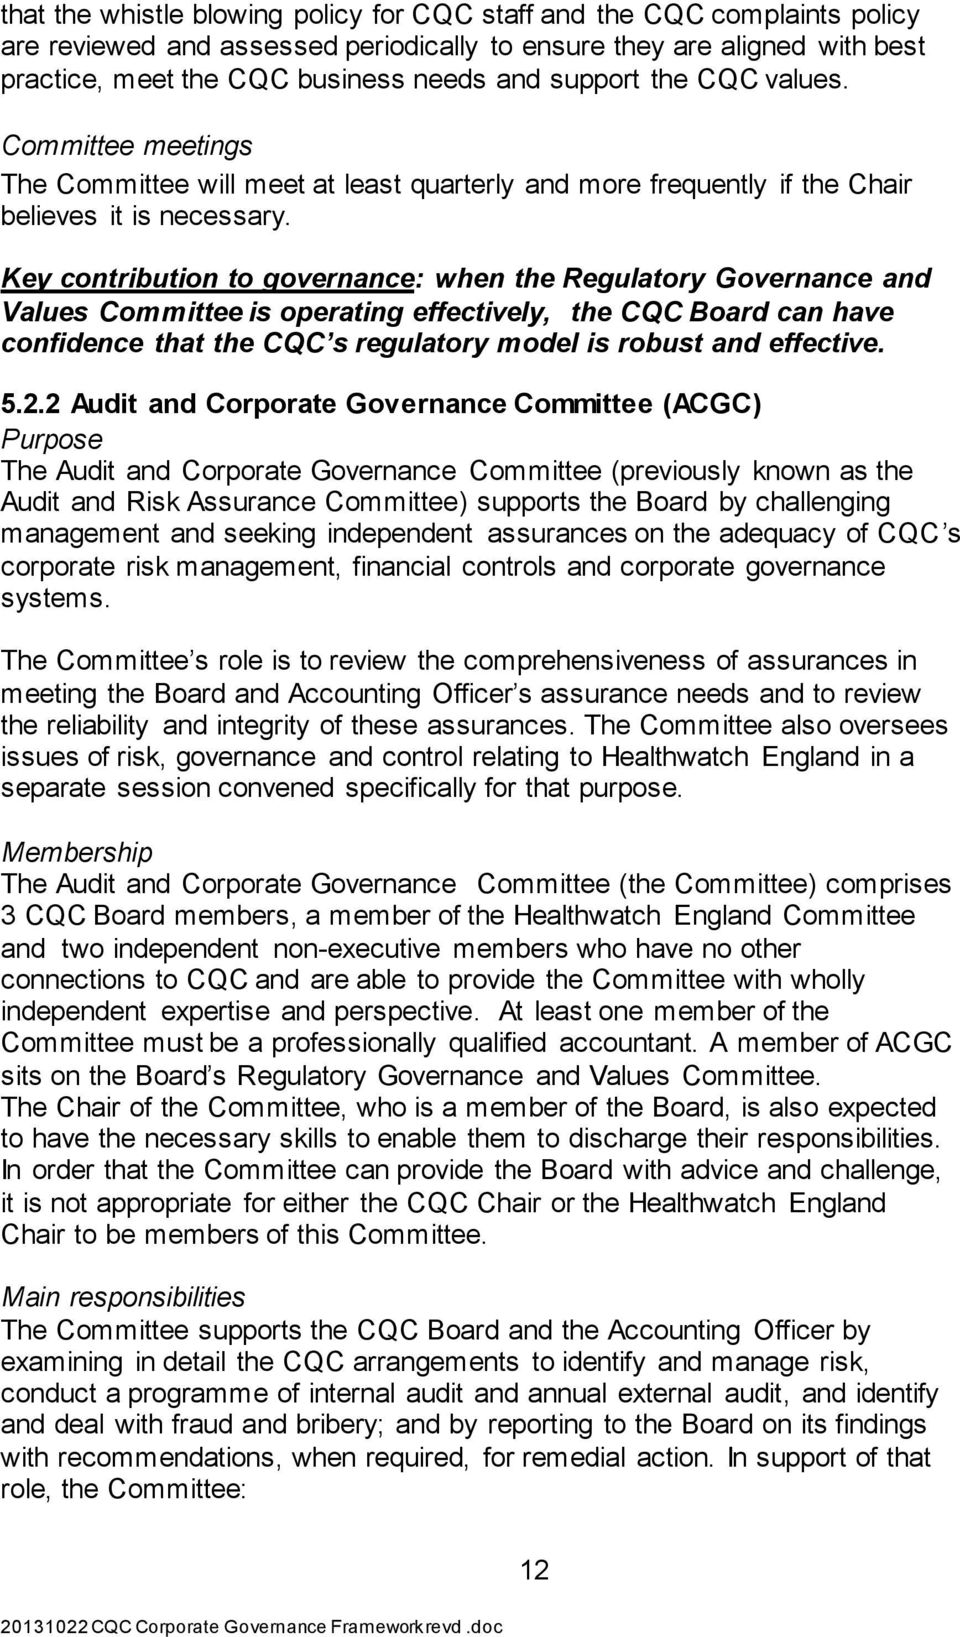 Key contribution to governance: when the Regulatory Governance and Values Committee is operating effectively, the CQC Board can have confidence that the CQC s regulatory model is robust and effective.